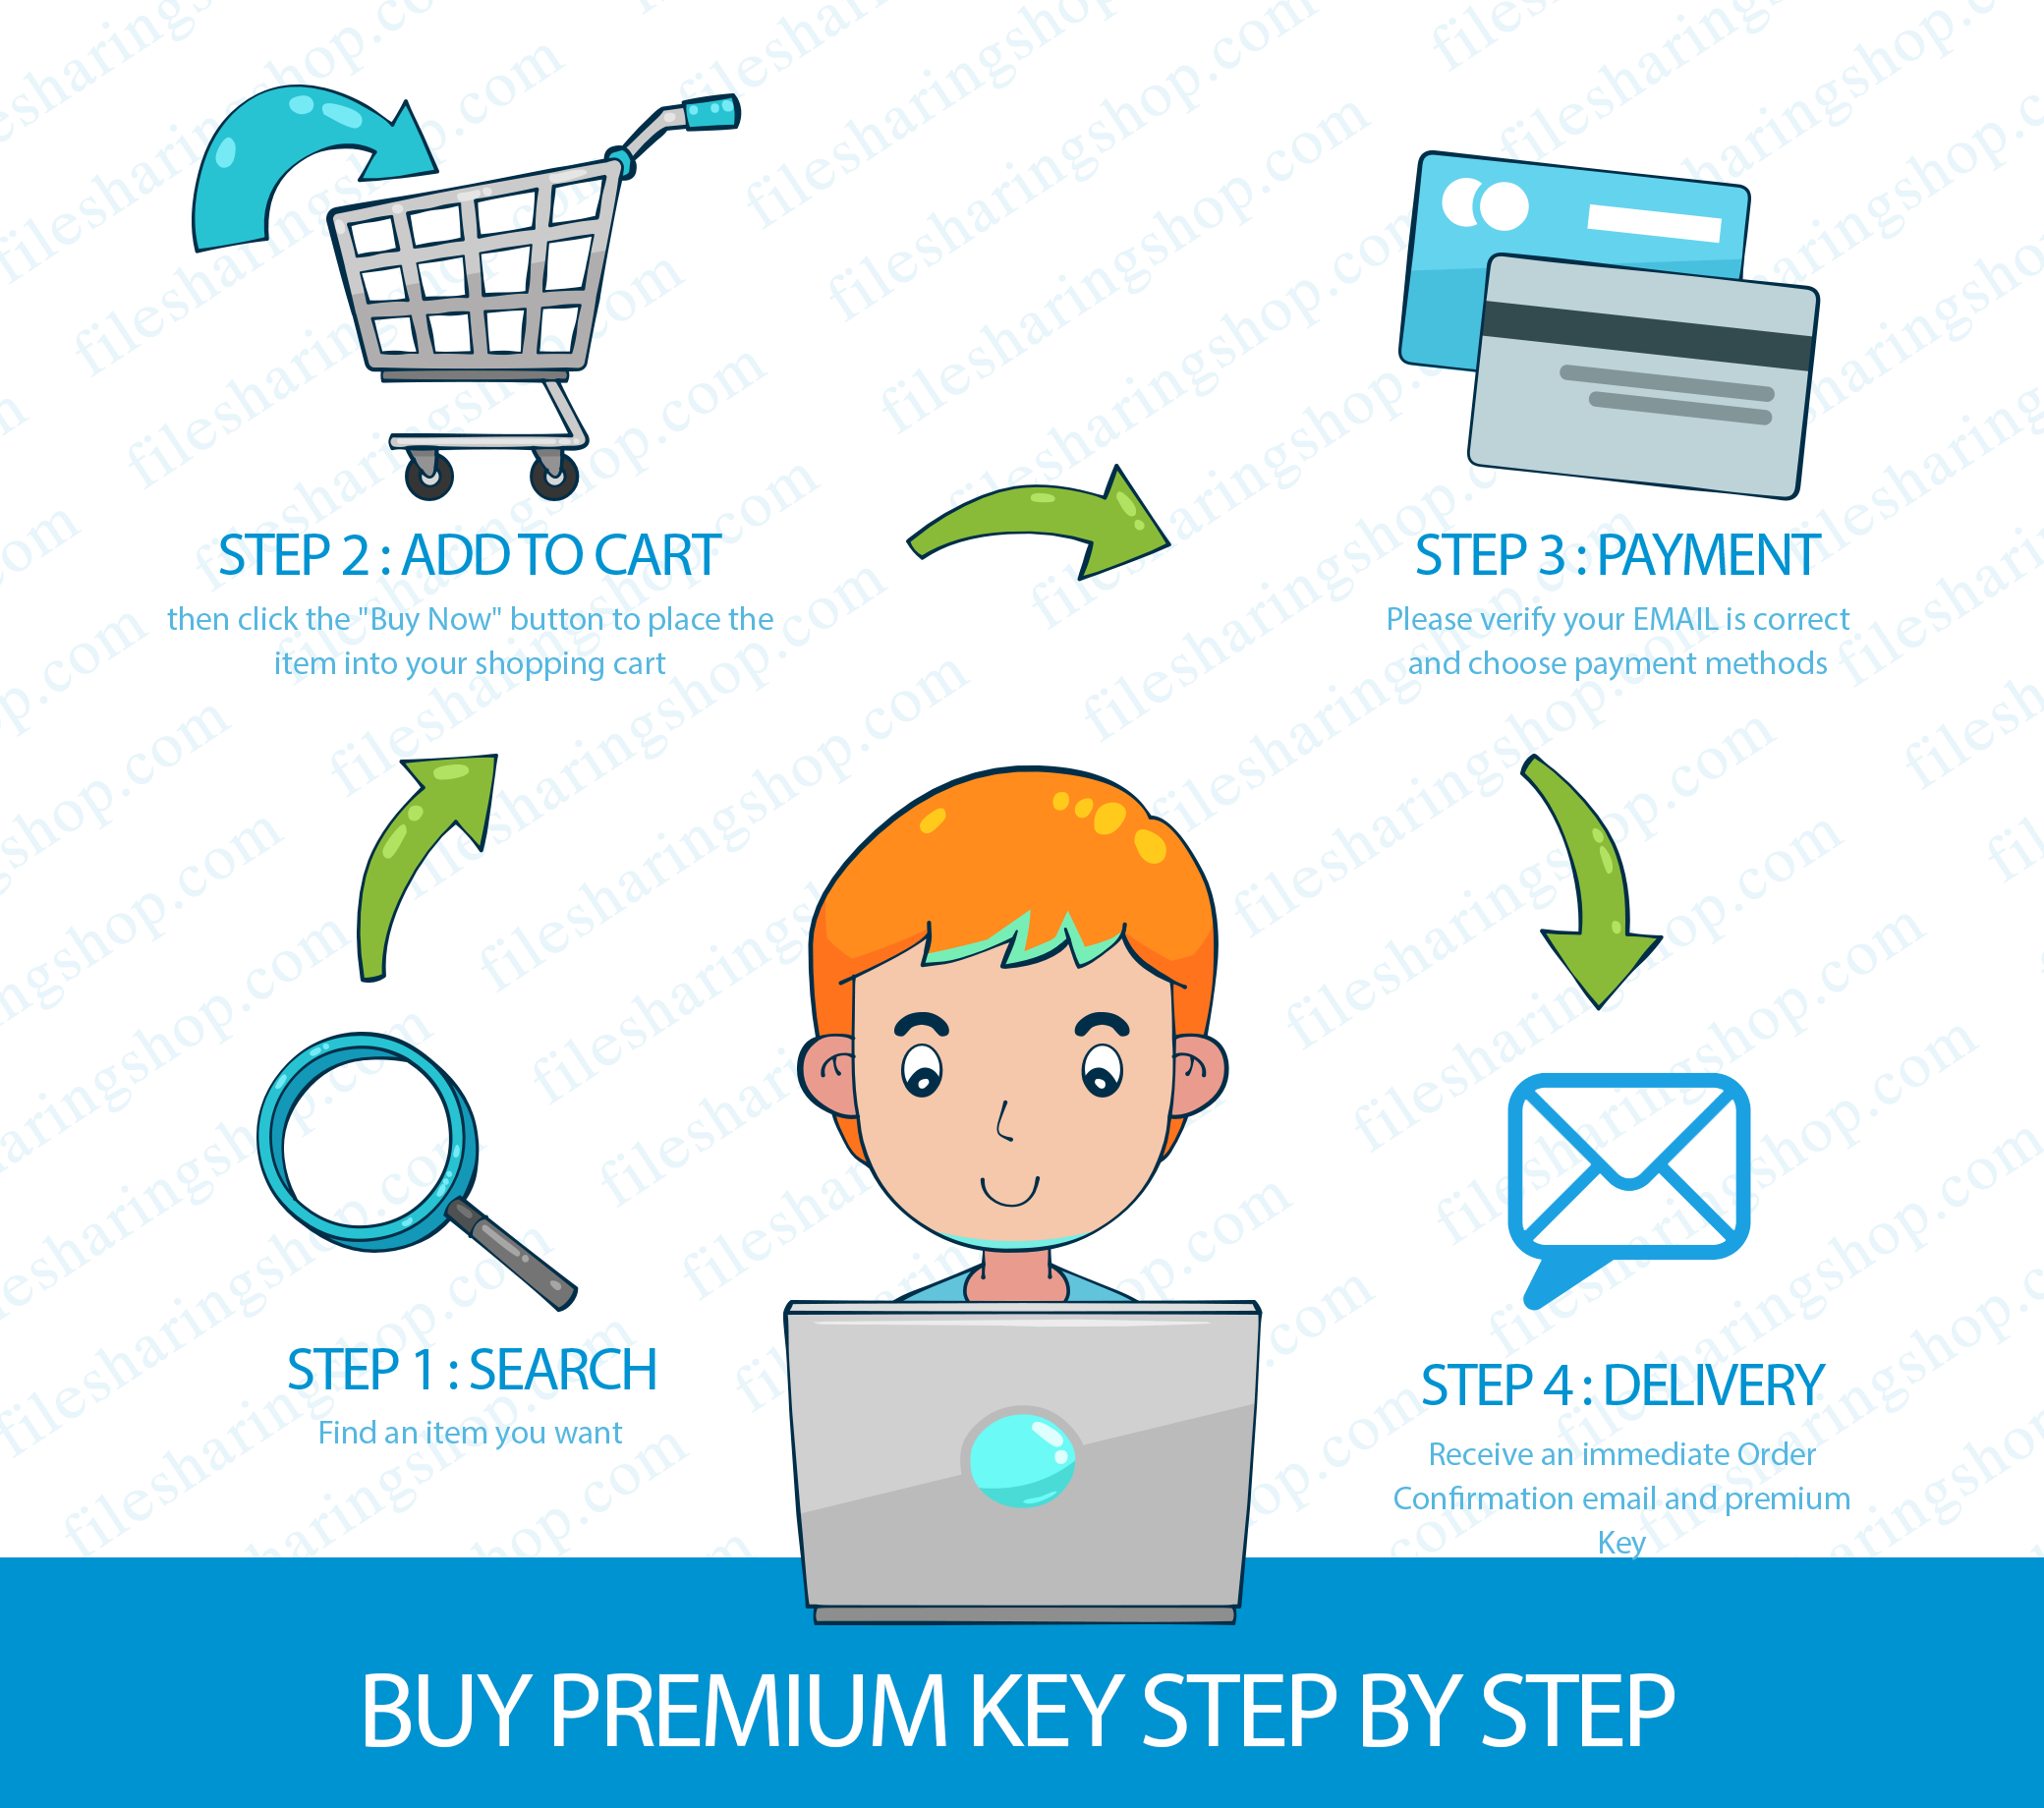 HOW TO BUY PREMBOX PREMIUM